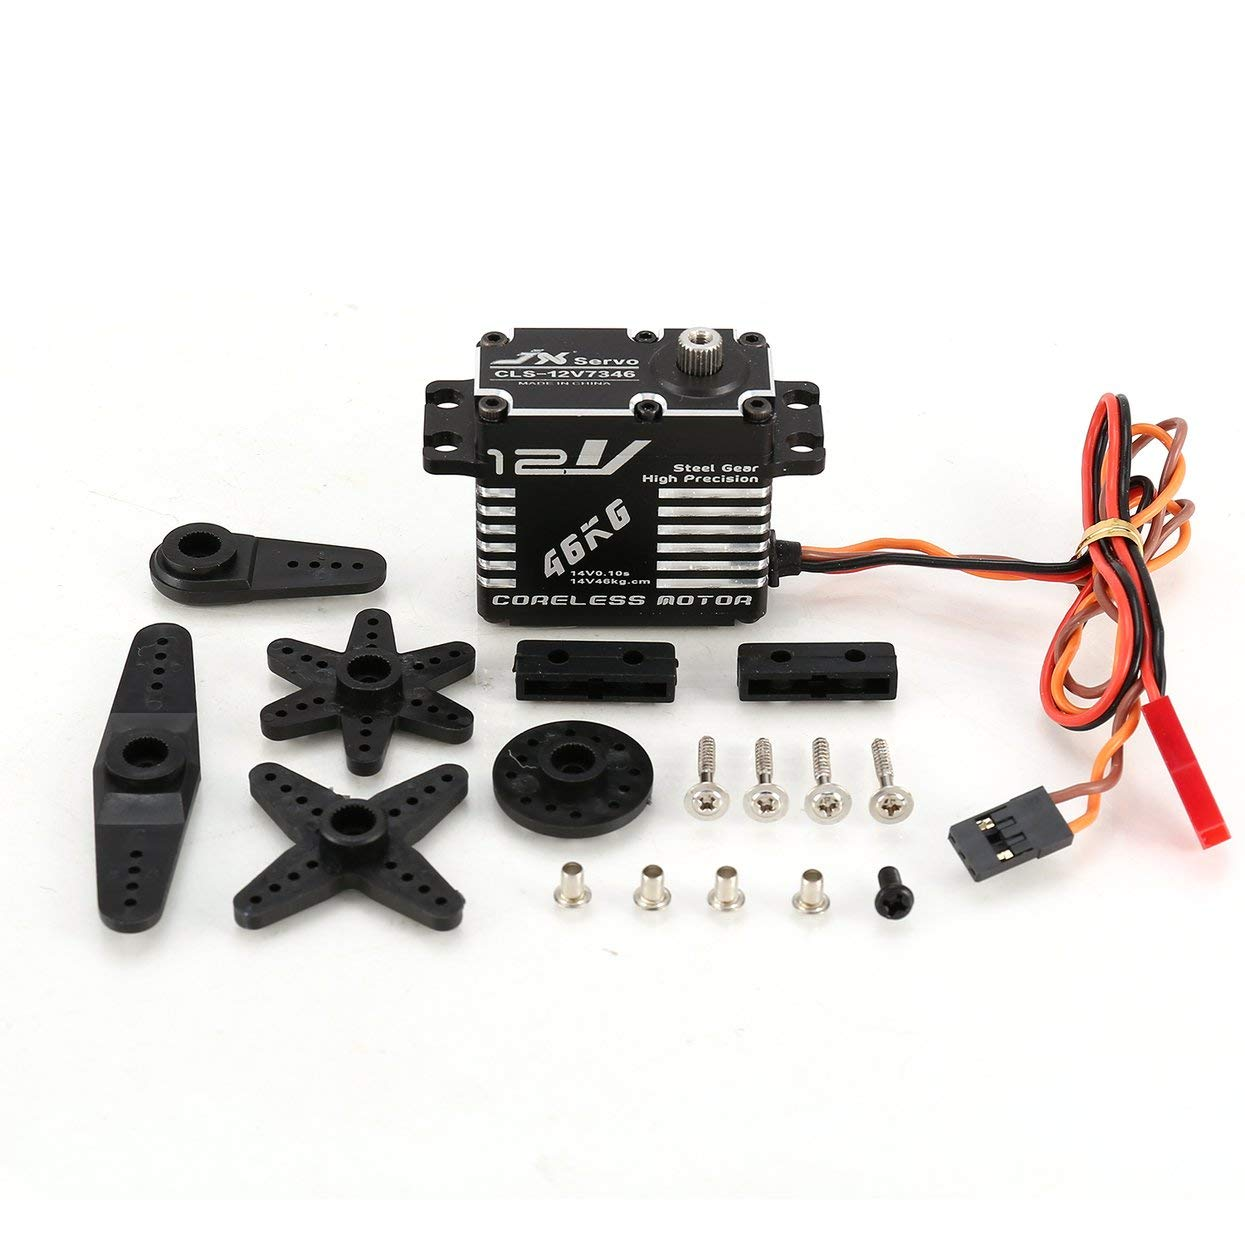 LoveOlvidoD JX CLS-12V7346 46 KG Metalllenkung Digital Gear Coreless Servo mit 12 V HV High Torque Spannung für RC Car Robot Drone